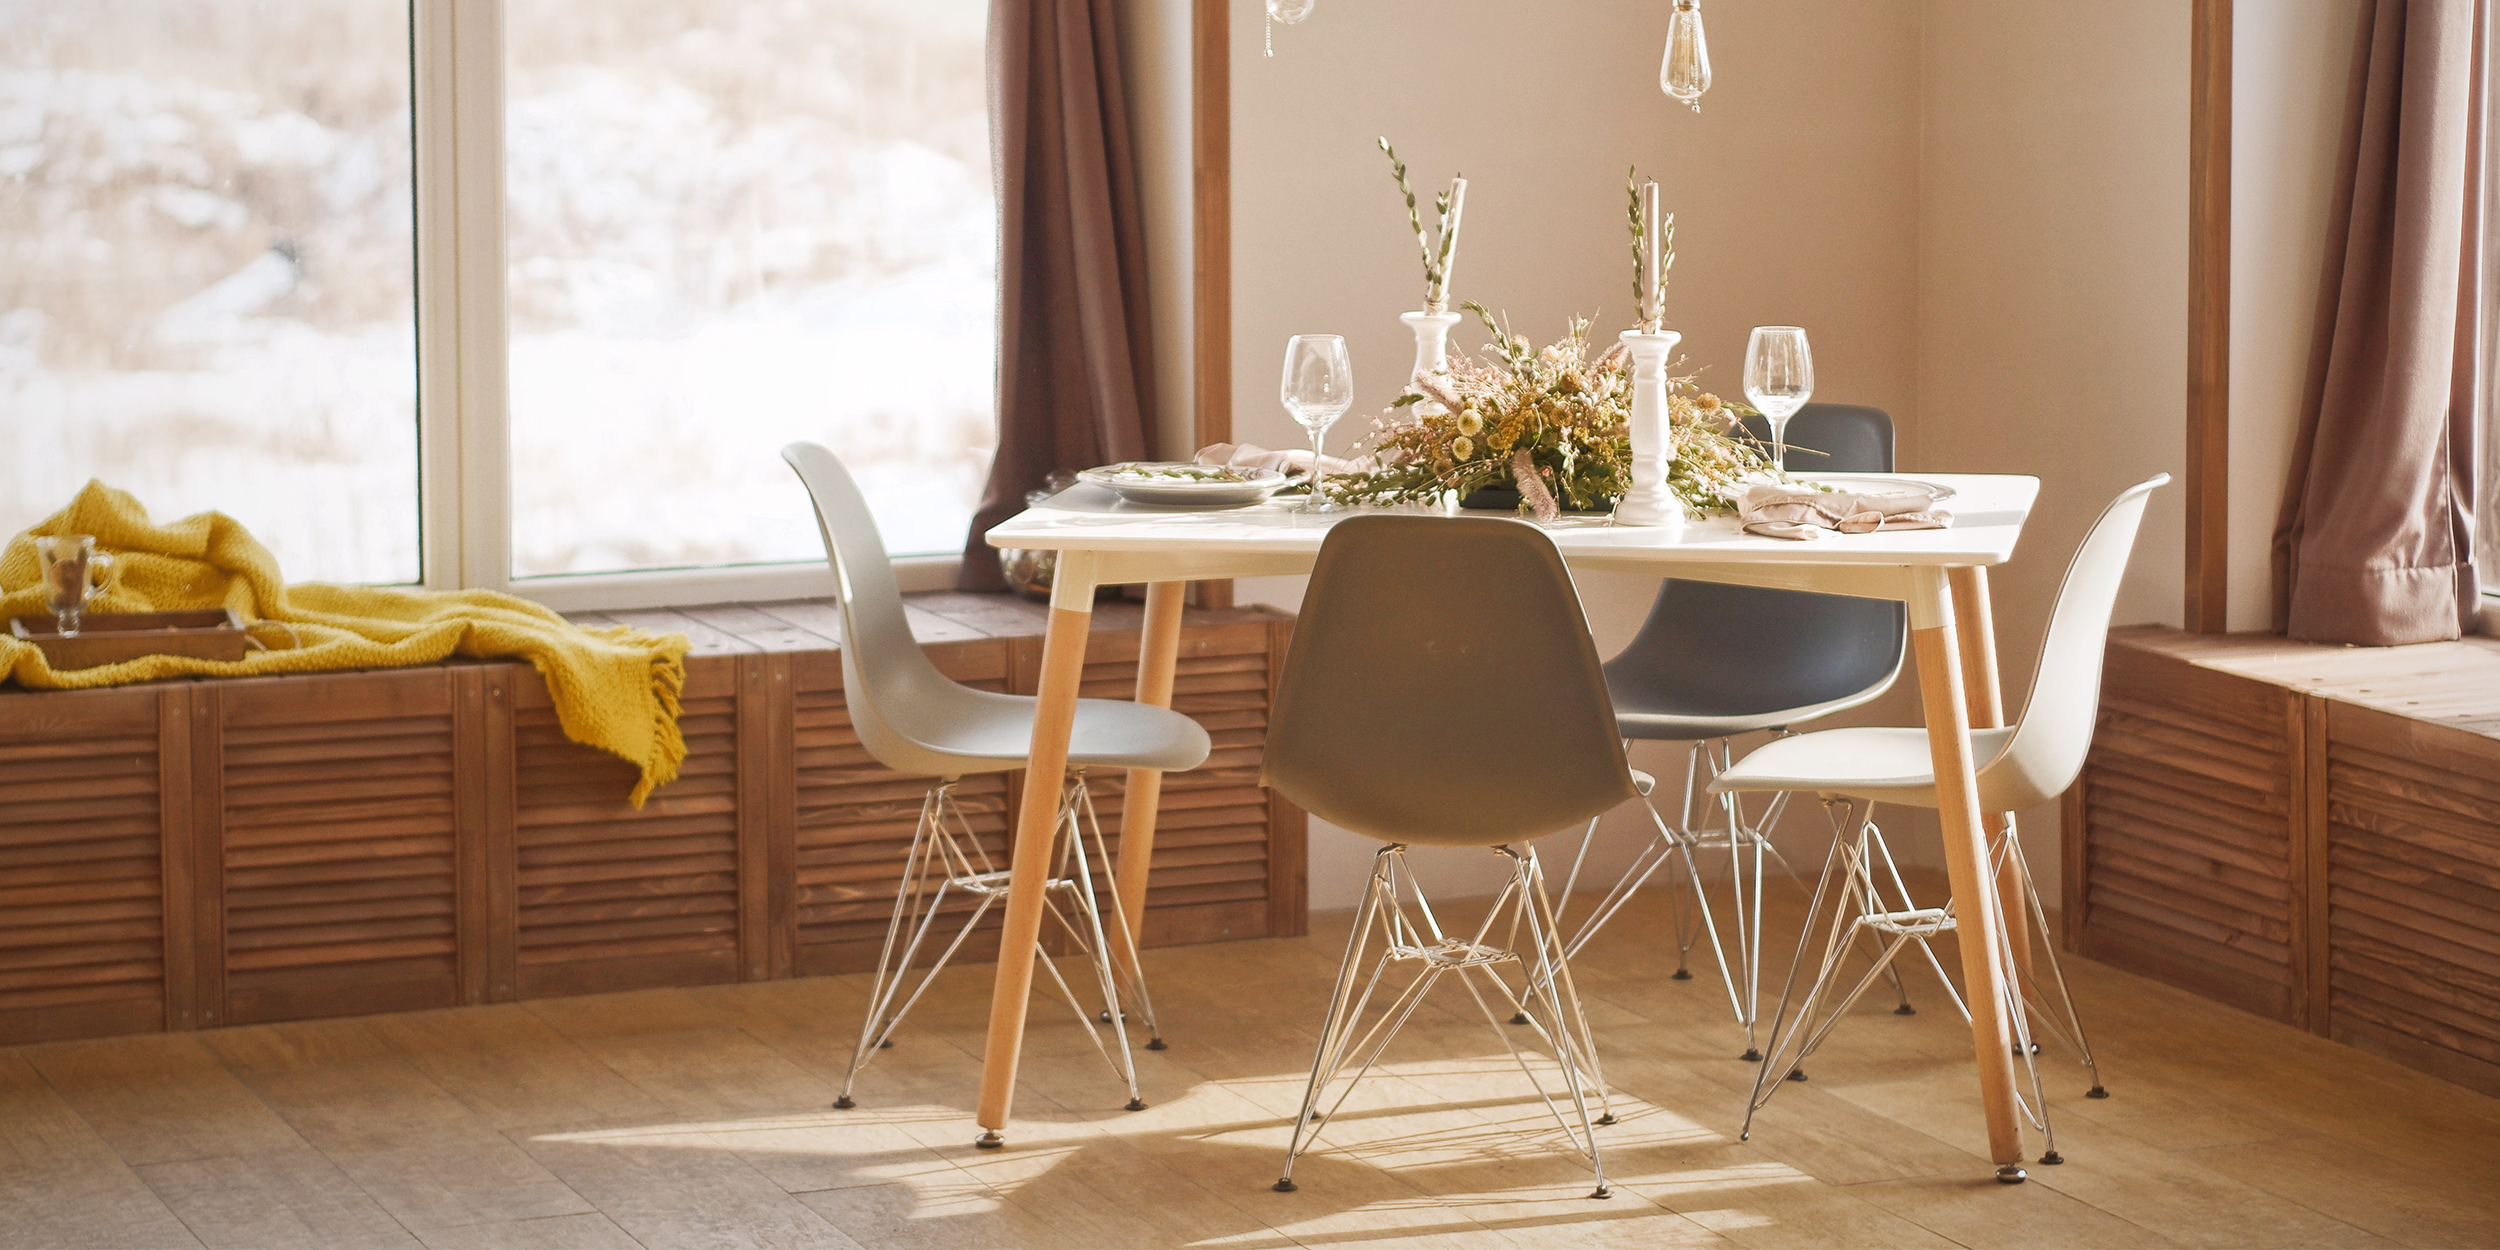 Eames DSR Chairs